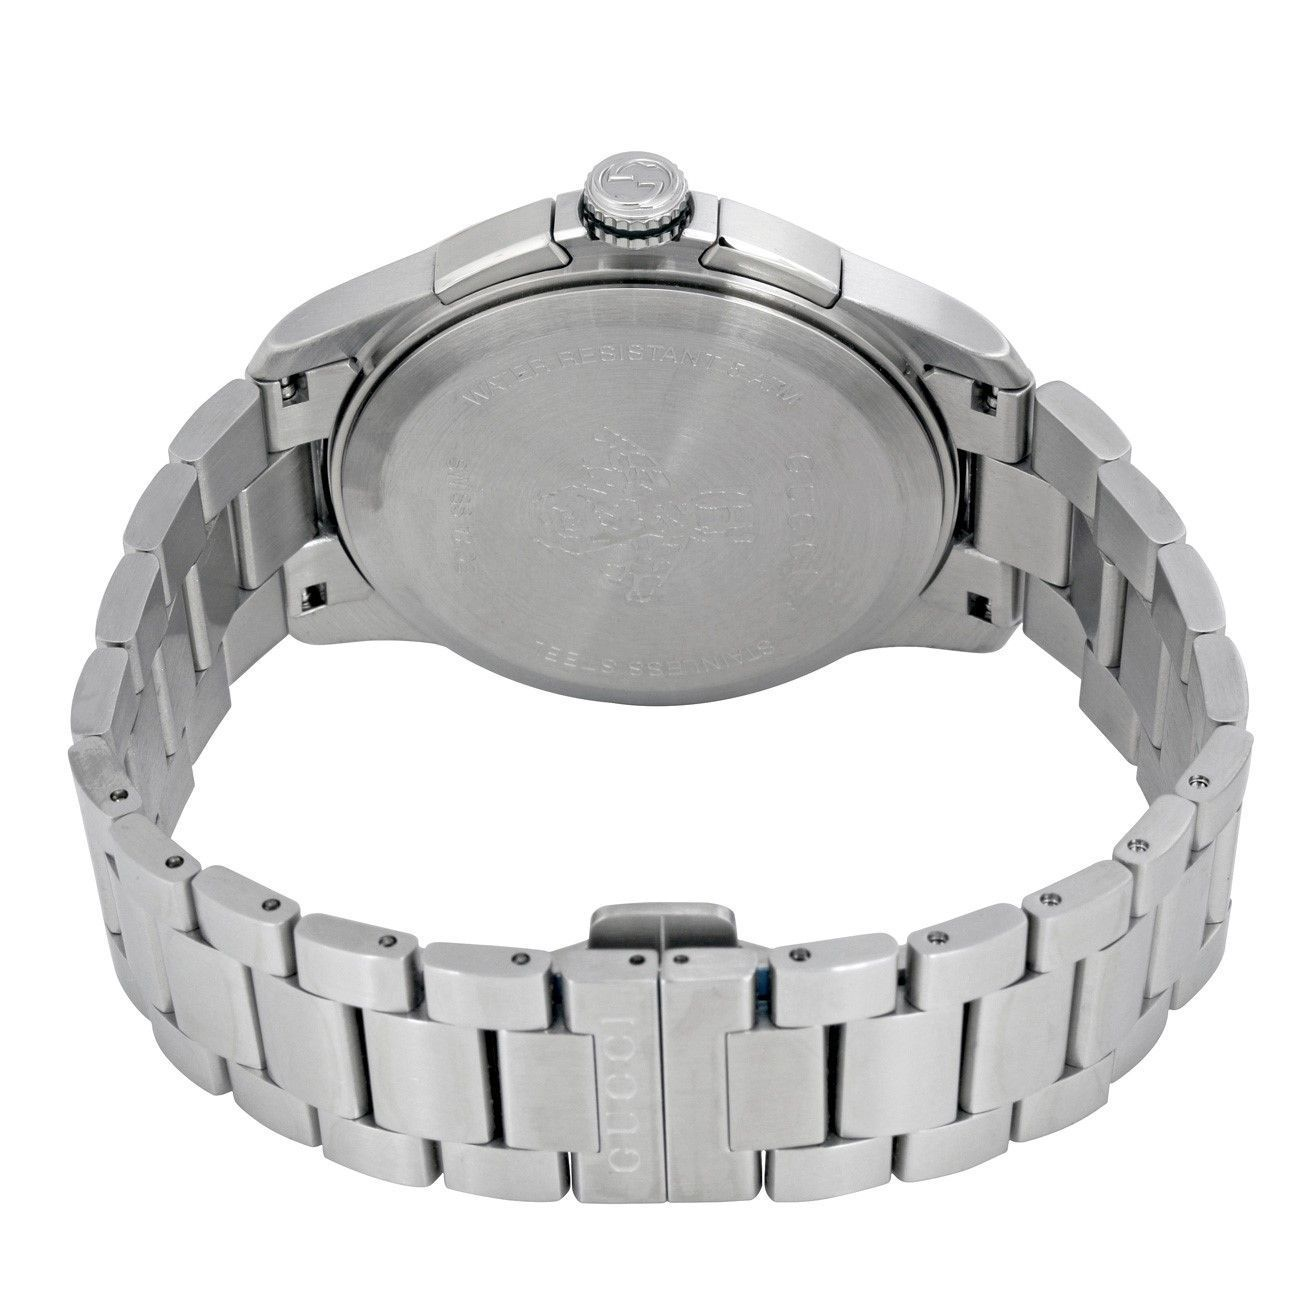 7d70c38b7df Shop Gucci Men s YA126267  G-Timeless  Stainless Steel Watch - silver -  Free Shipping Today - Overstock - 13150287